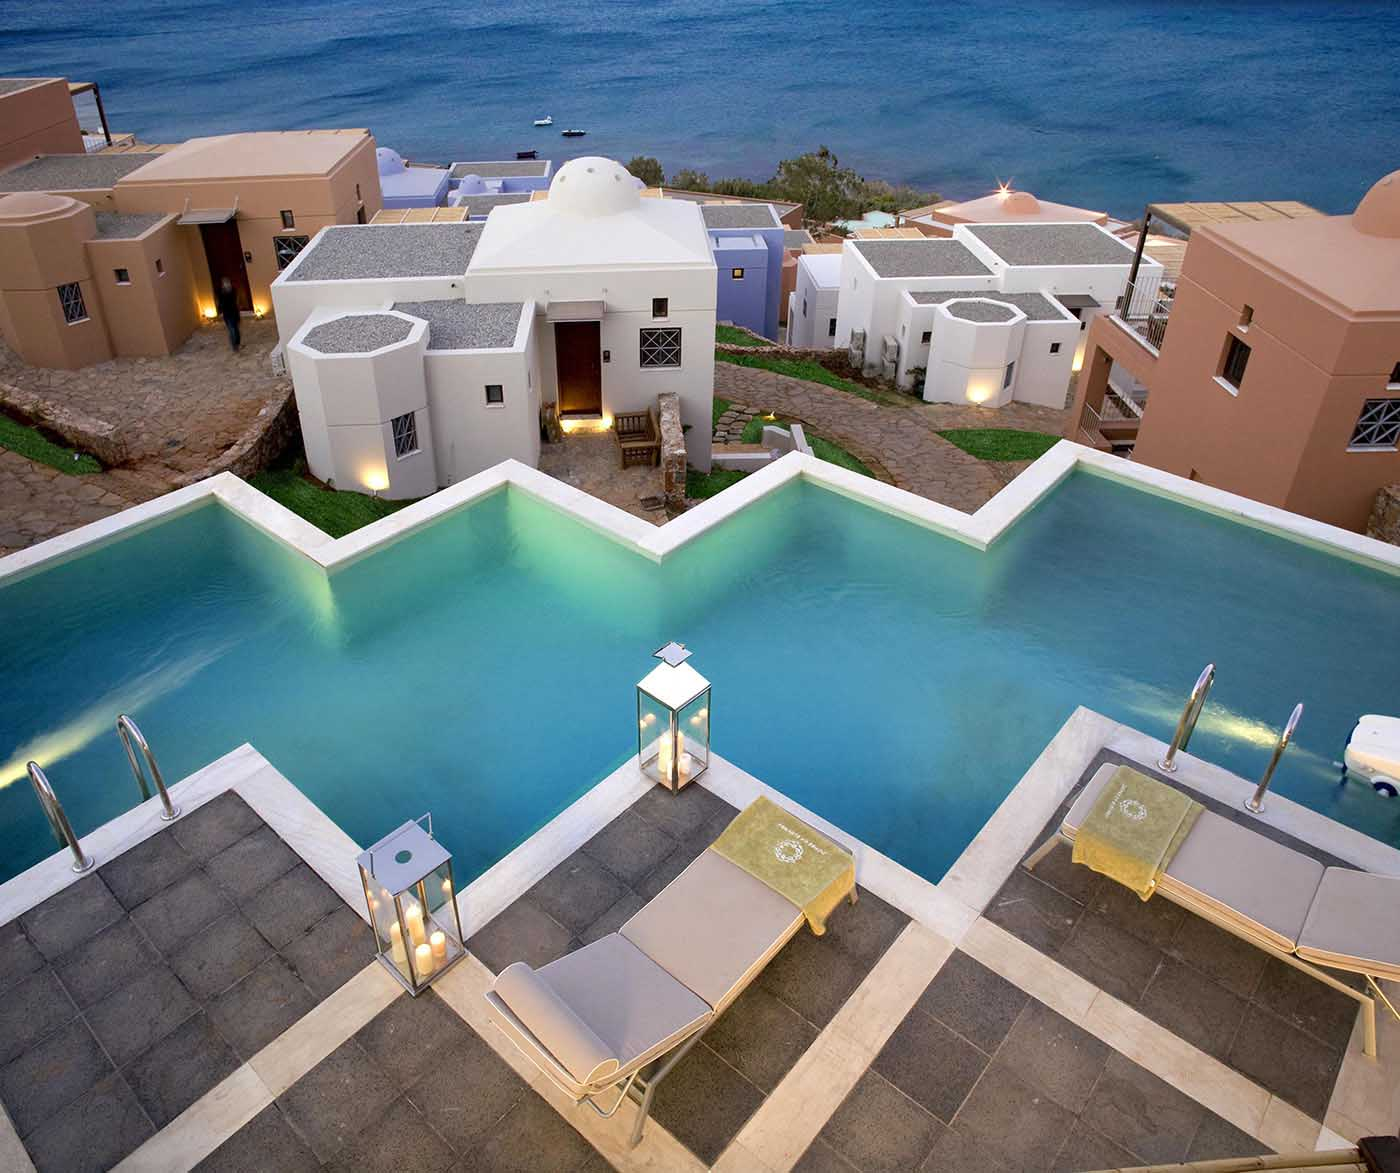 Gournes hotels & resorts, 50% discount for early bookings, Gournes, Heraklion, Crete, Greece